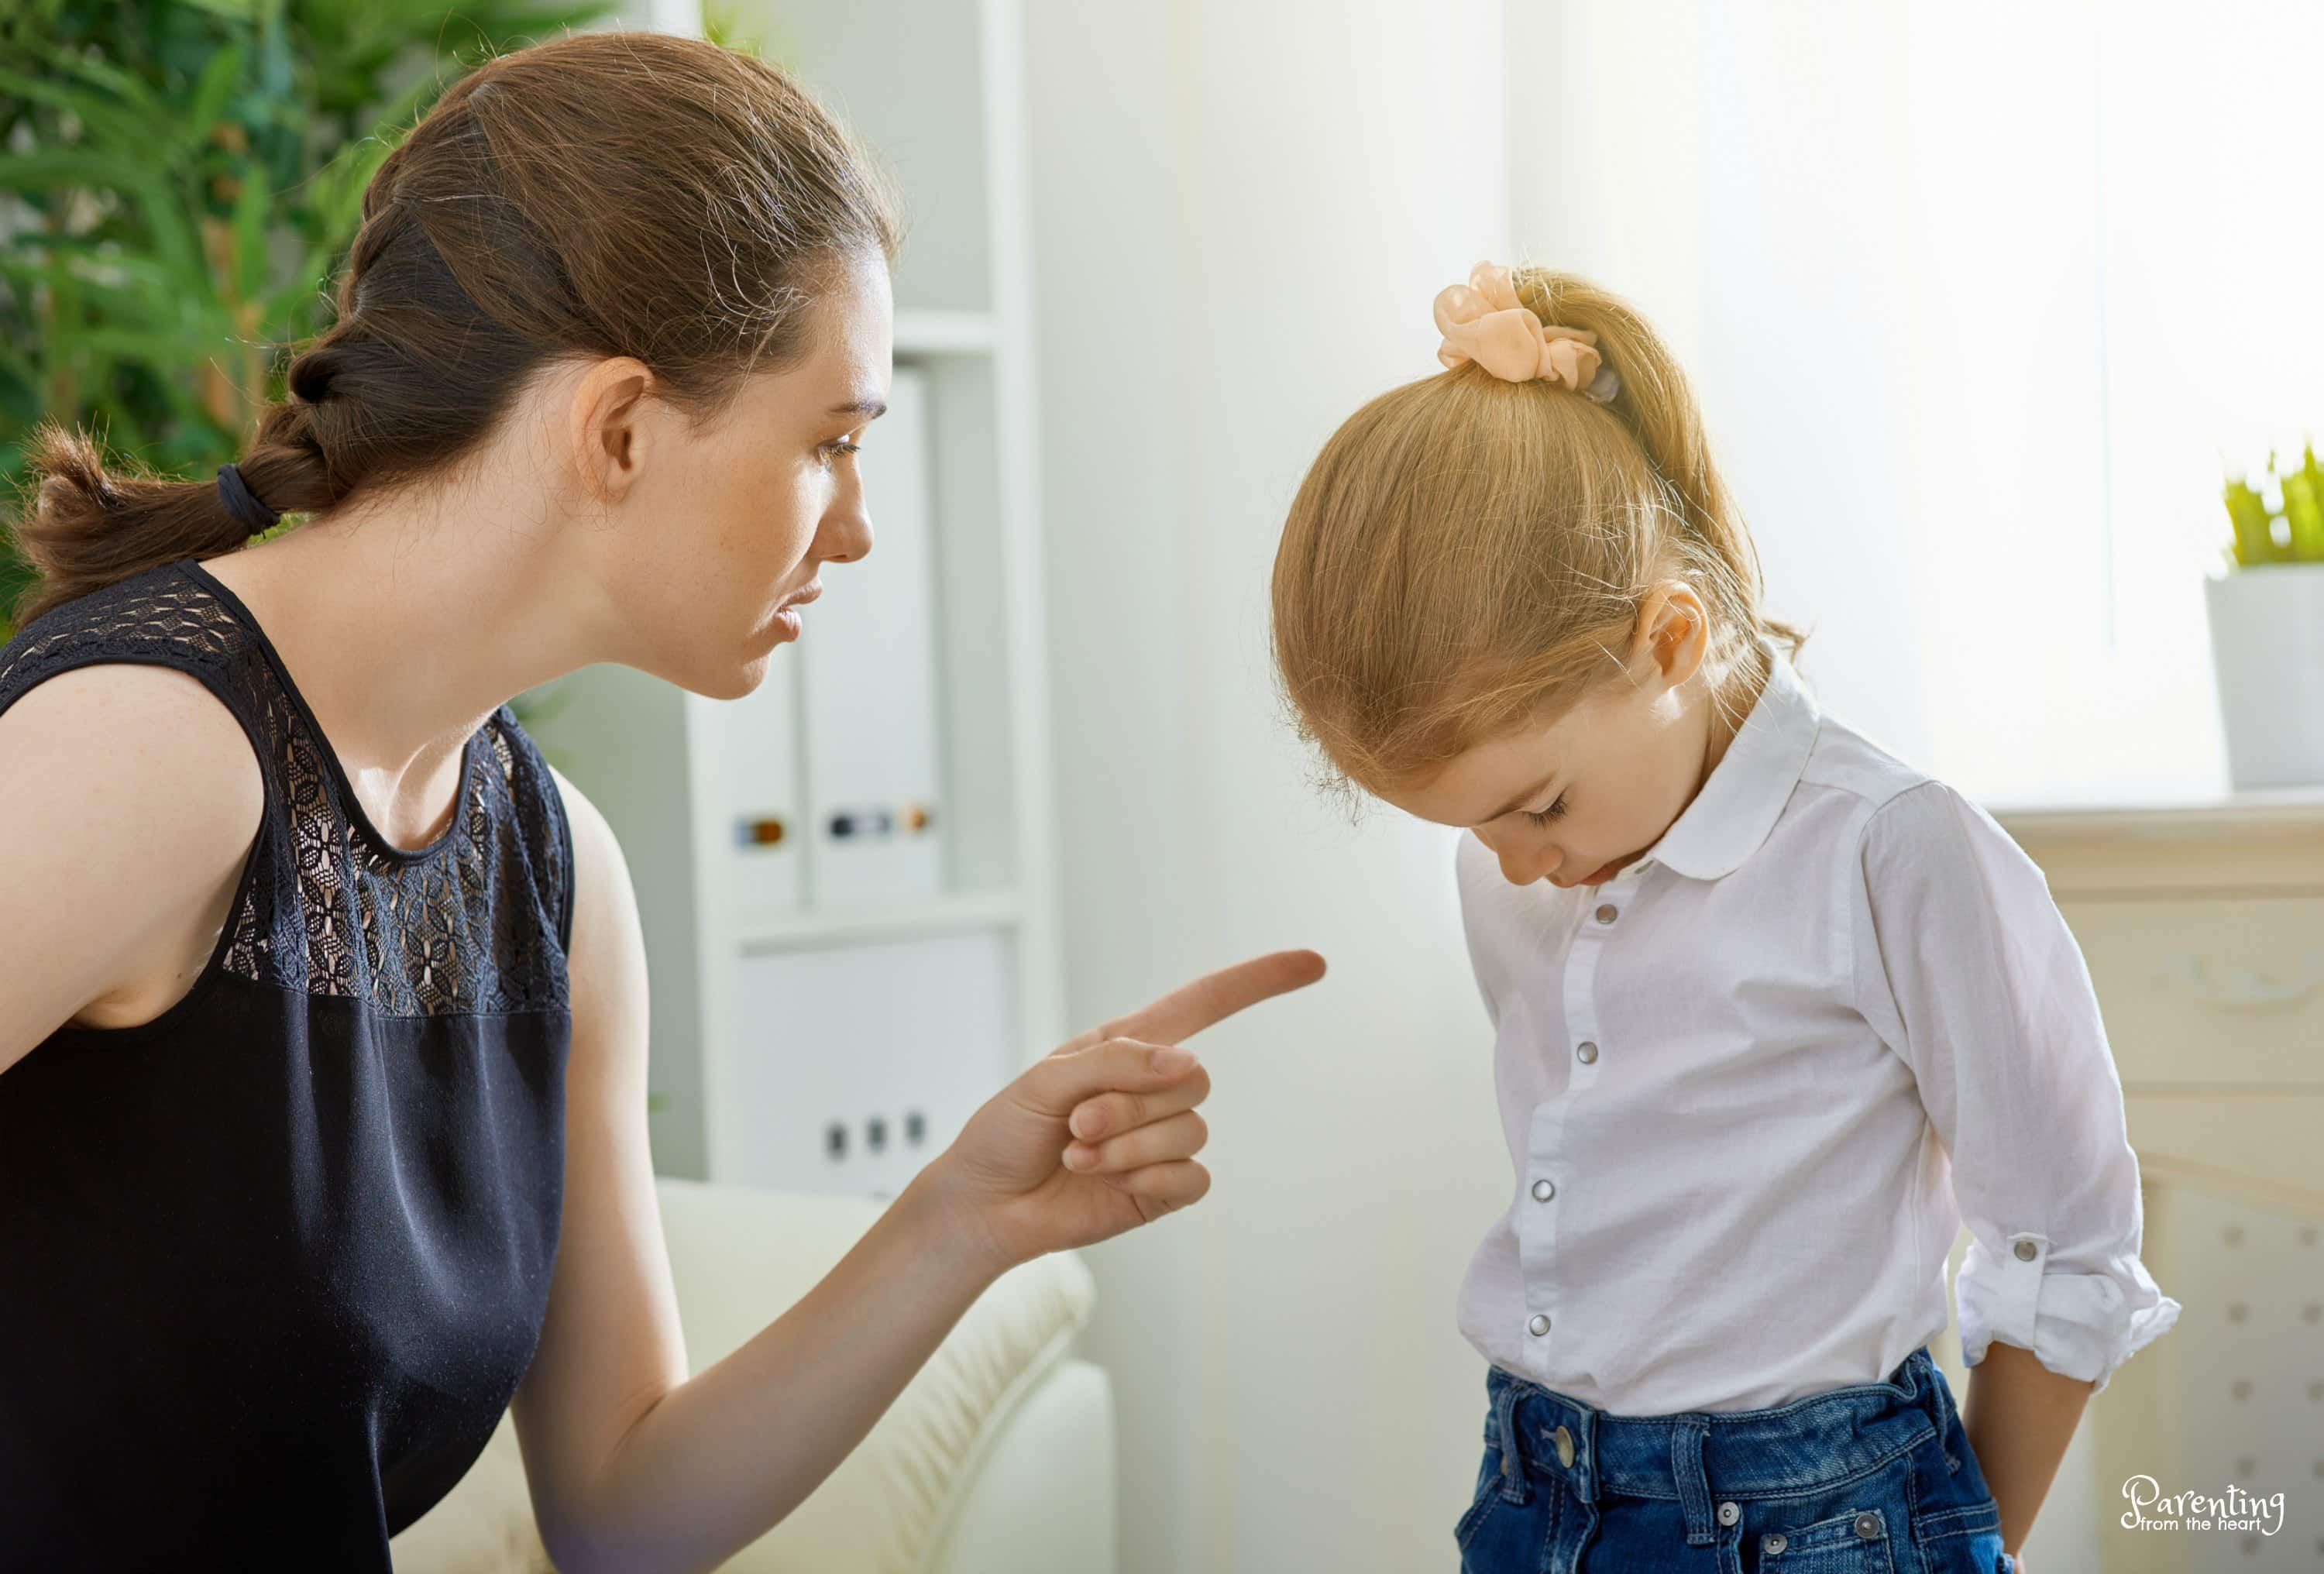 Many were raised using punishment. Spanking and timeouts were the norms. Find out what research says and the answer to the 'I turned out fine' argument. Find out what are the best discipline techniques and so much more. Positive parenting. Parenting from the Heart